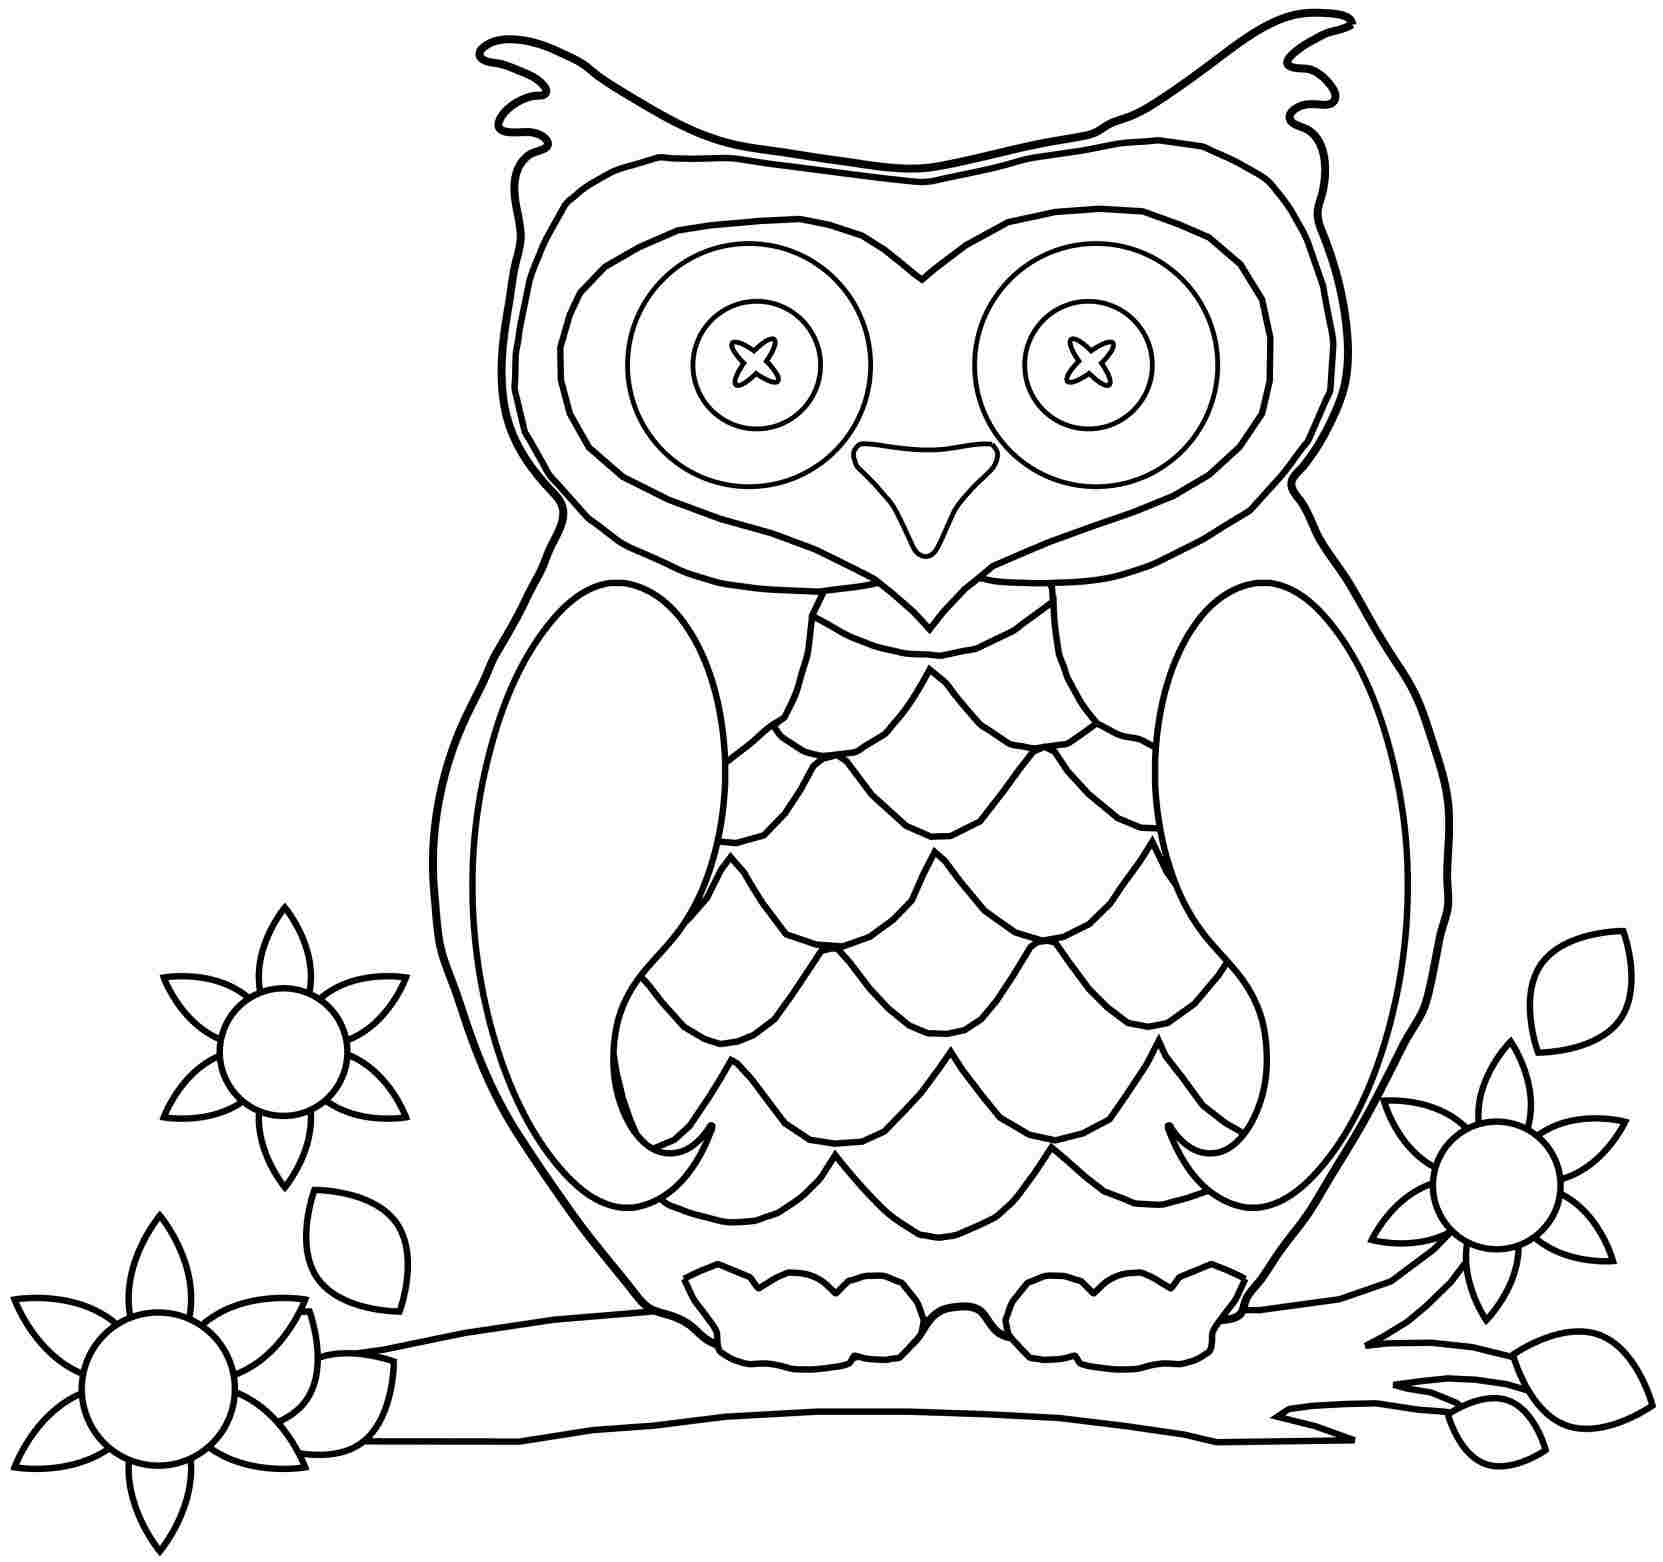 Owl Coloring Pages To Print 02